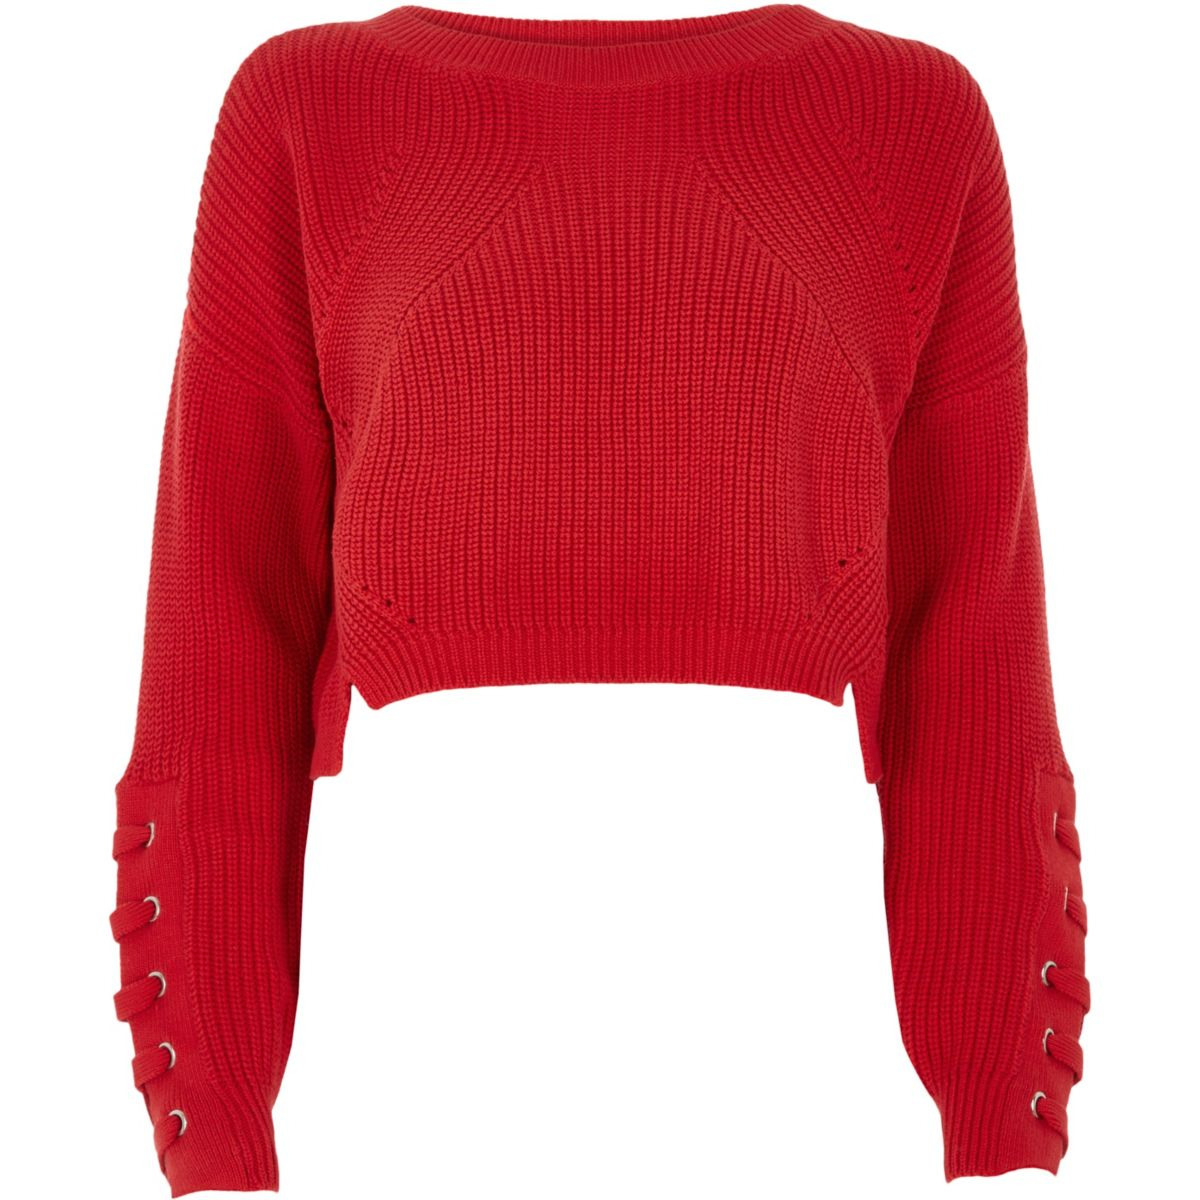 Red lace-up eyelet cropped jumper